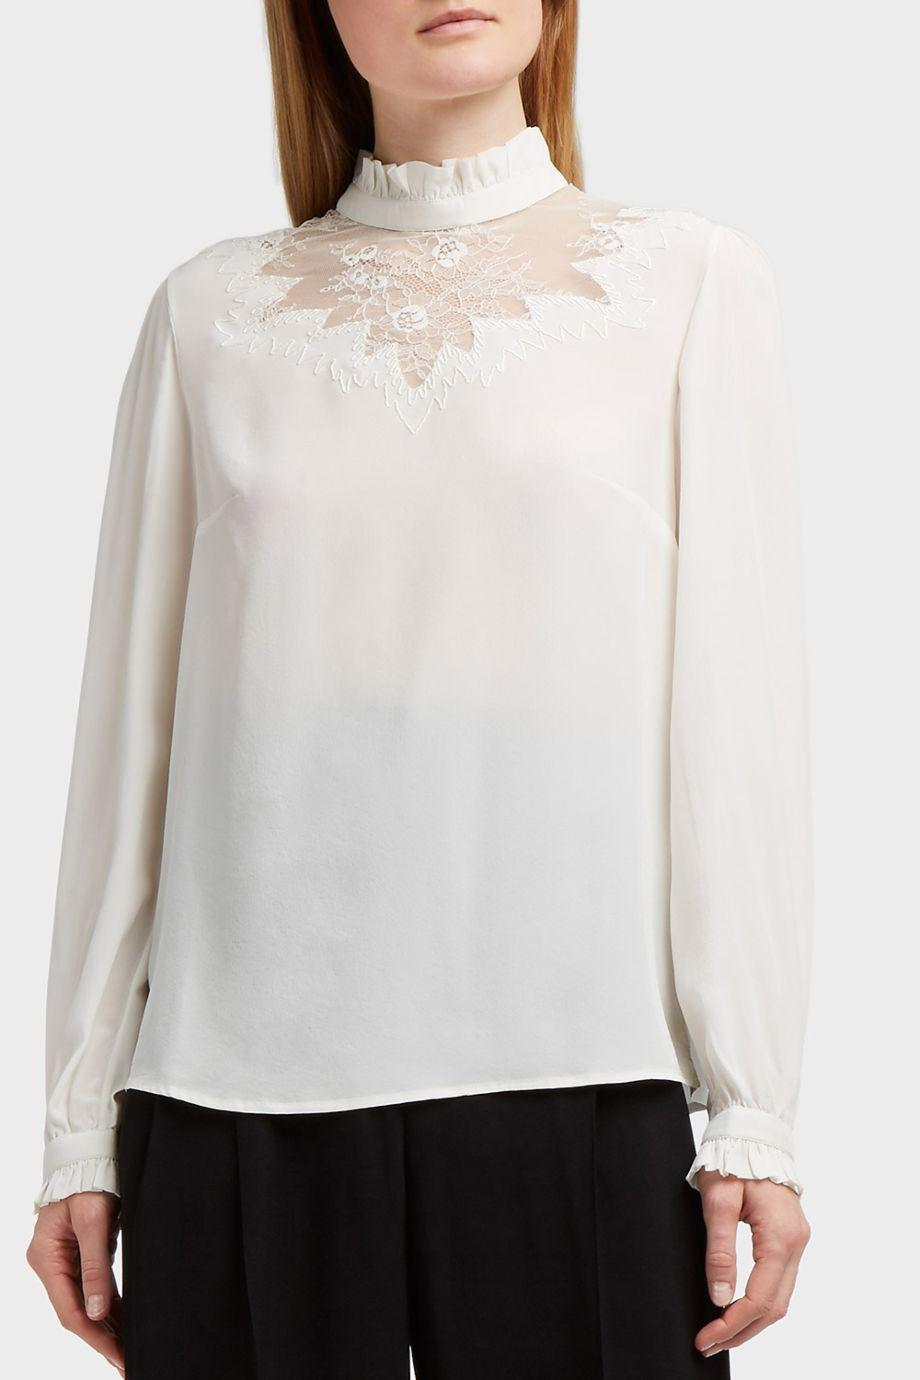 Outlet Perfect Clearance Reliable Lace-paneled Silk Crepe De Chine Blouse - White Paul & Joe Buy Cheap Best Store To Get Collections Sale Online Visit Cheap Price lb3B0z